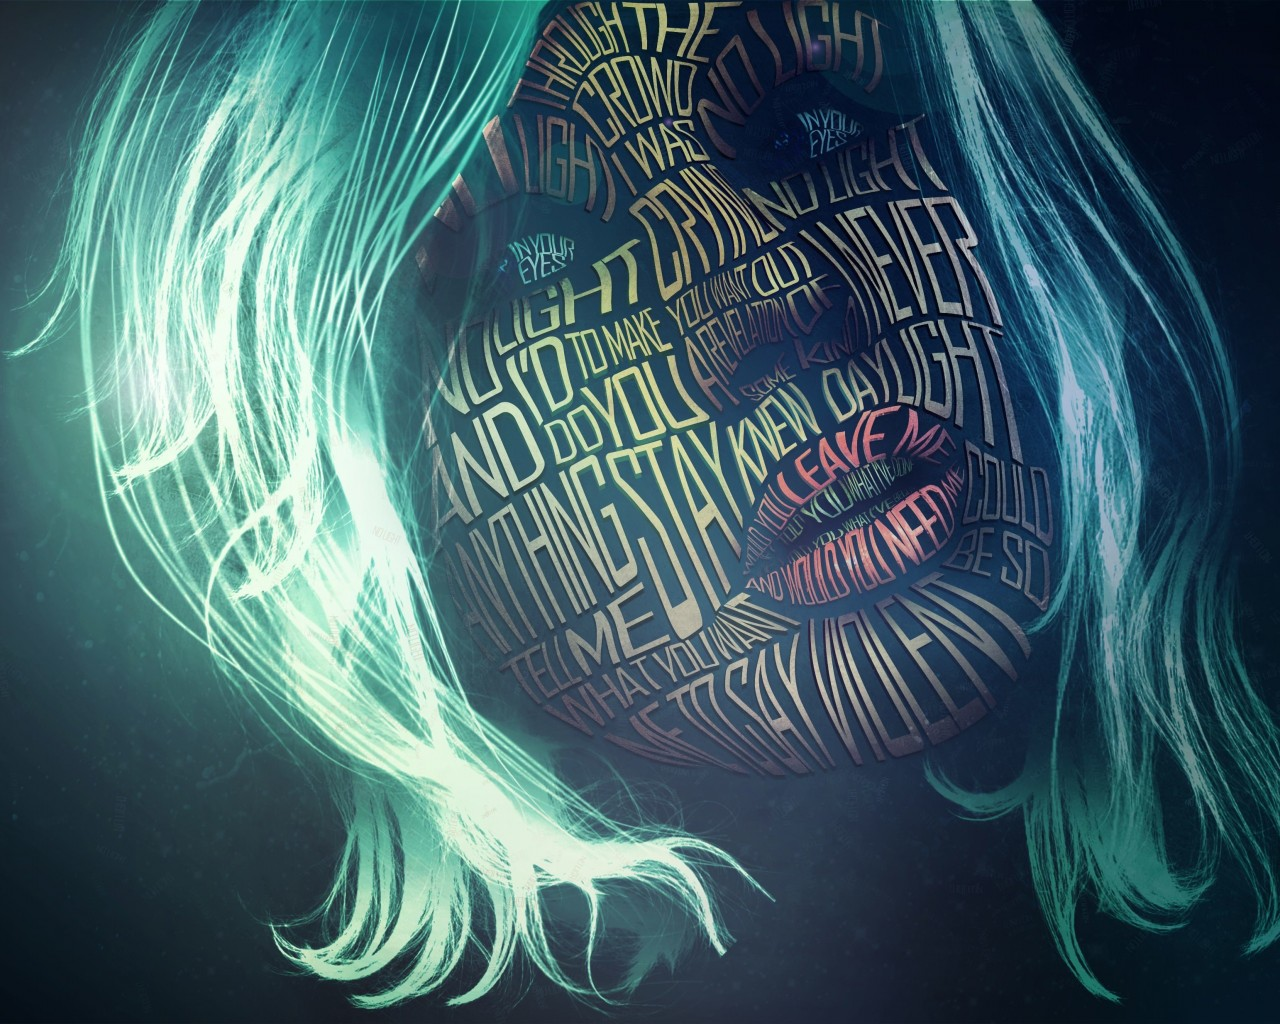 Woman Face Typography Wallpaper for Desktop 1280x1024